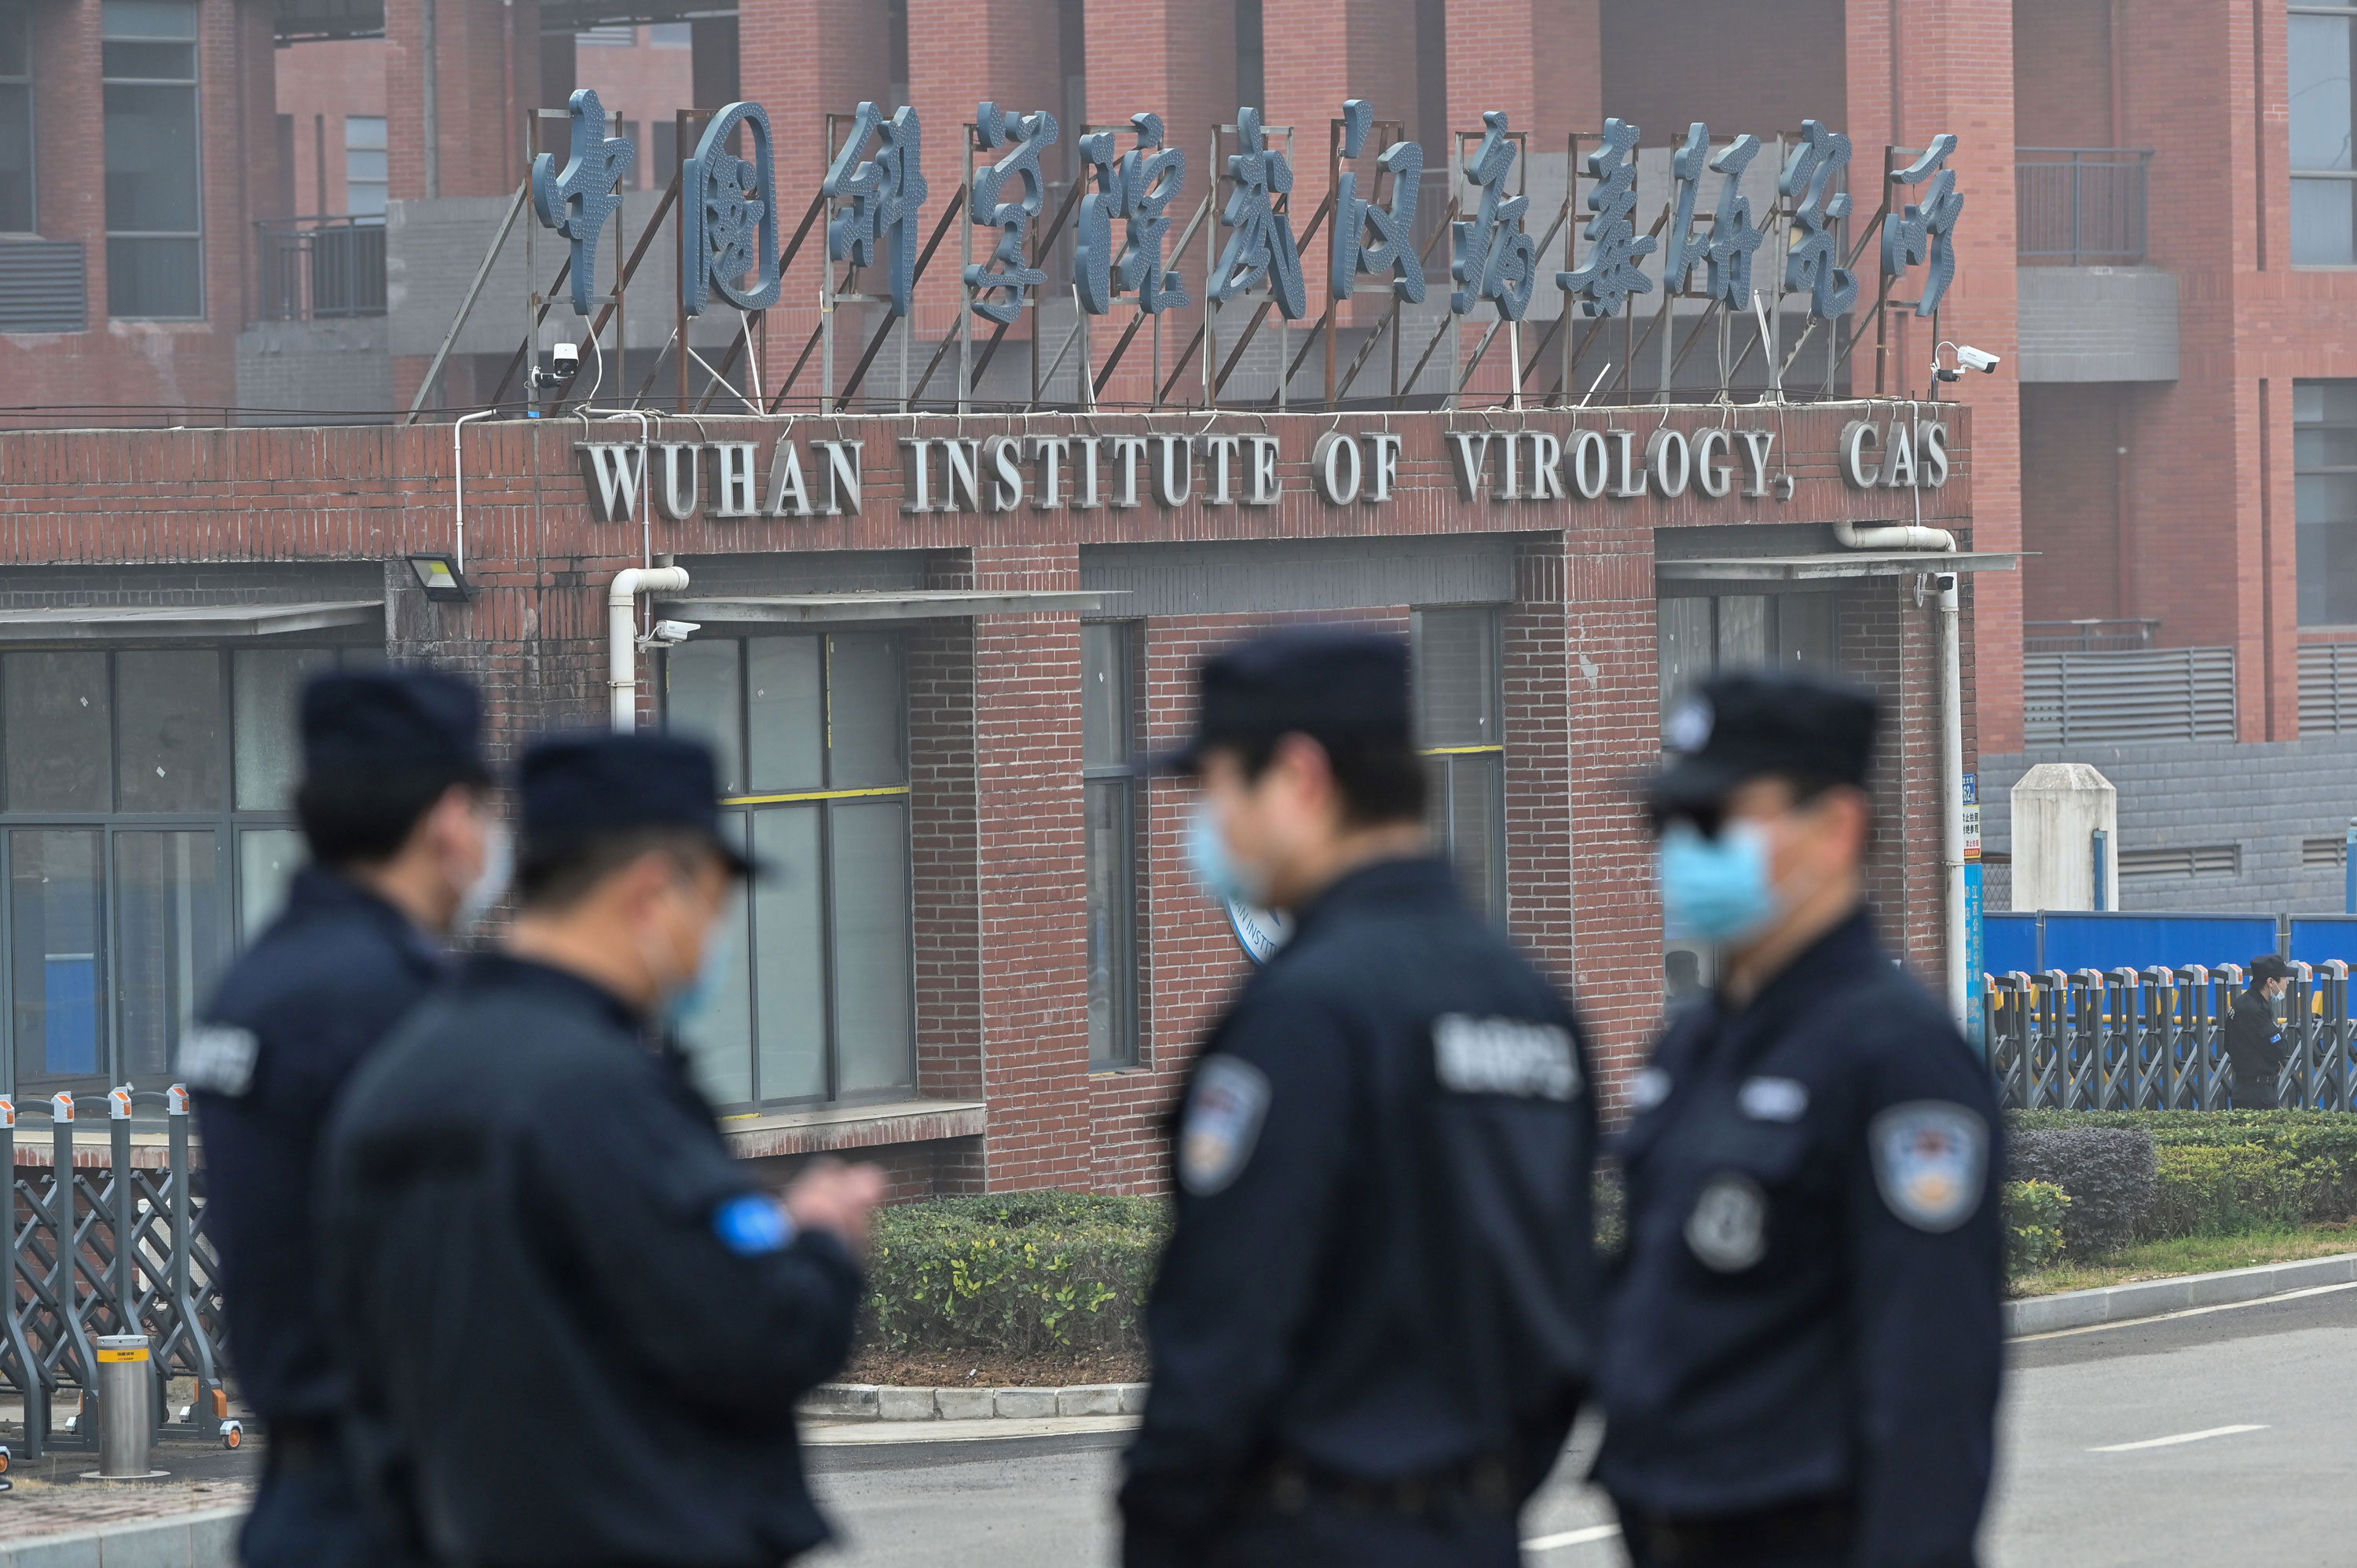 Security personnel stand guard outside the Wuhan Institute of Virology in Hubei province on February 3.